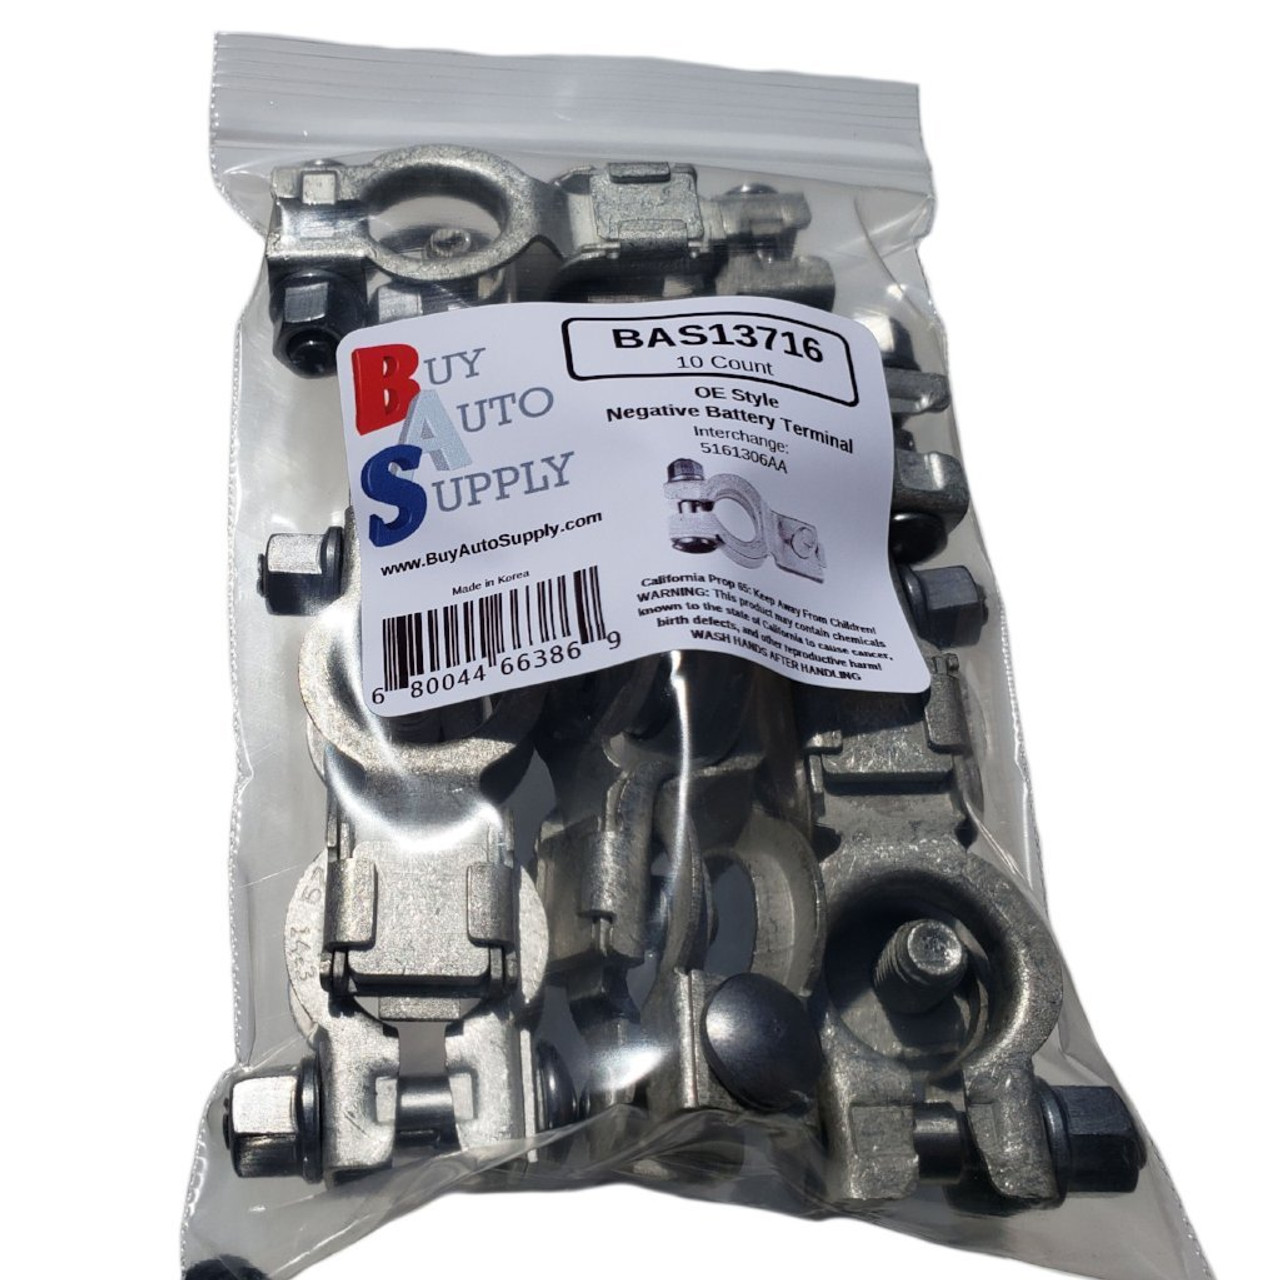 Bag of 10 Negative Top Mount Battery Terminal - Chrysler, Dodge, Jeep, Ram Style - Interchanges 5161306AA